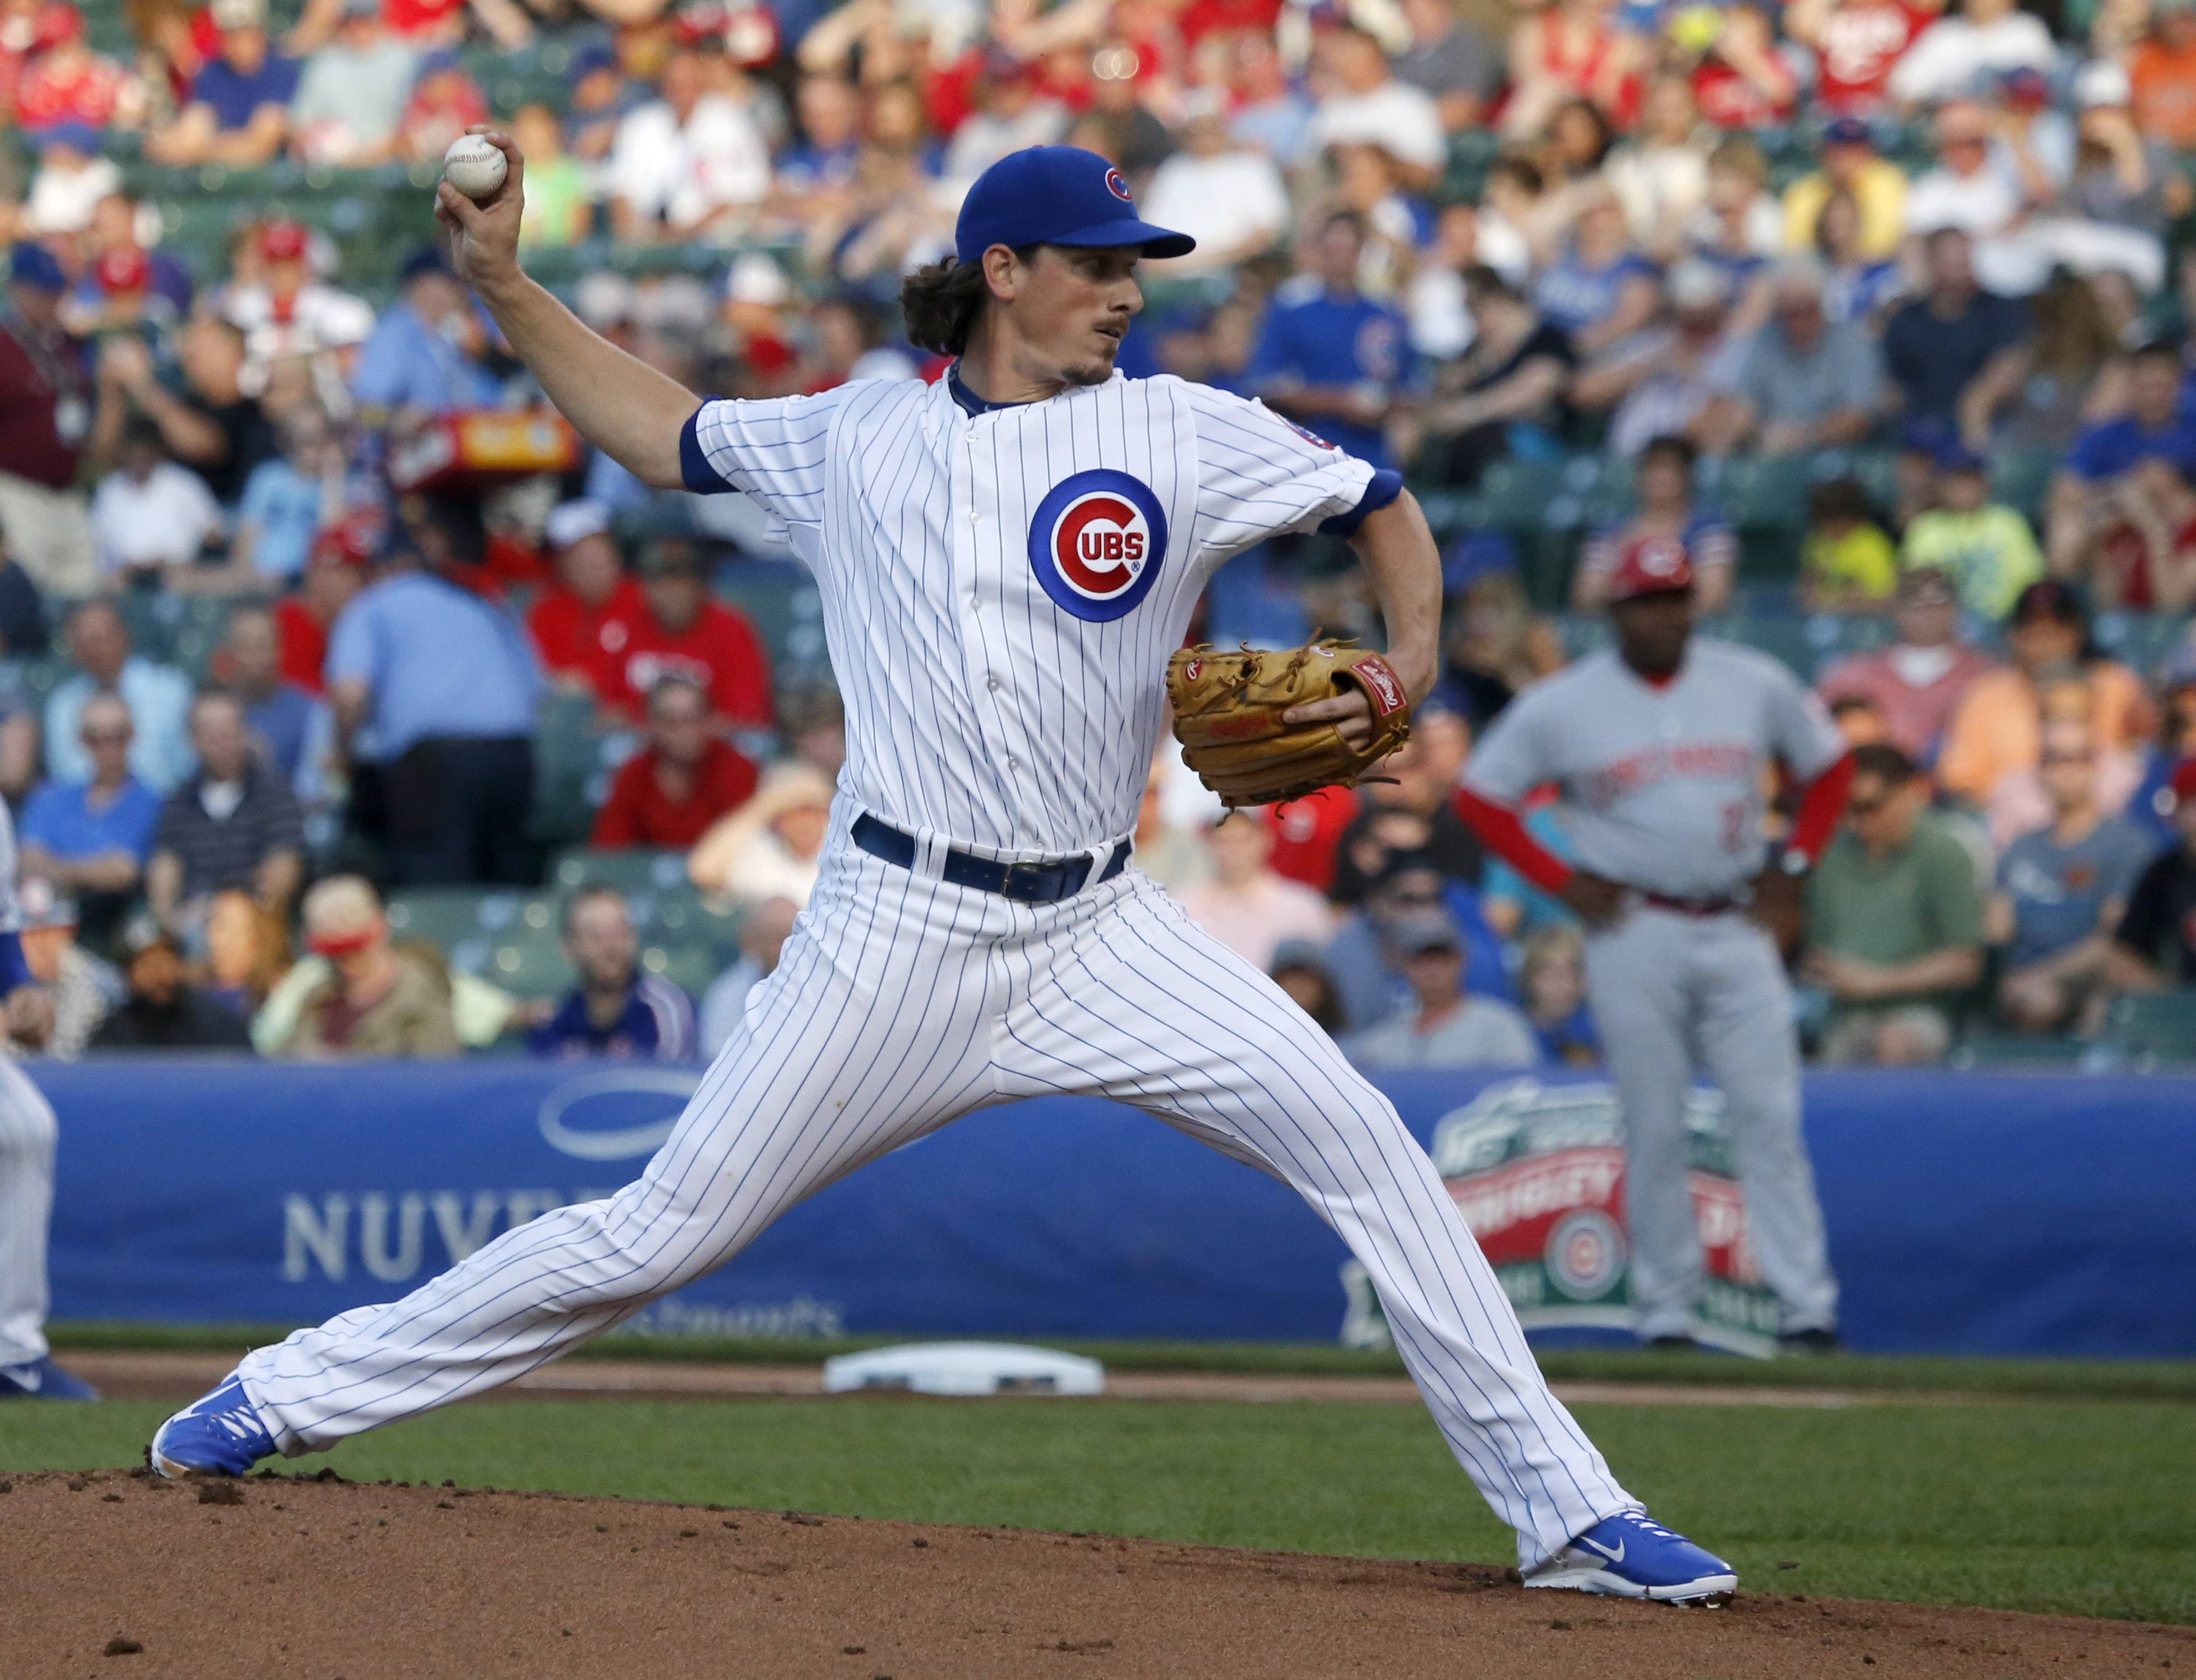 In big picture, Samardzija getting job done for Cubs